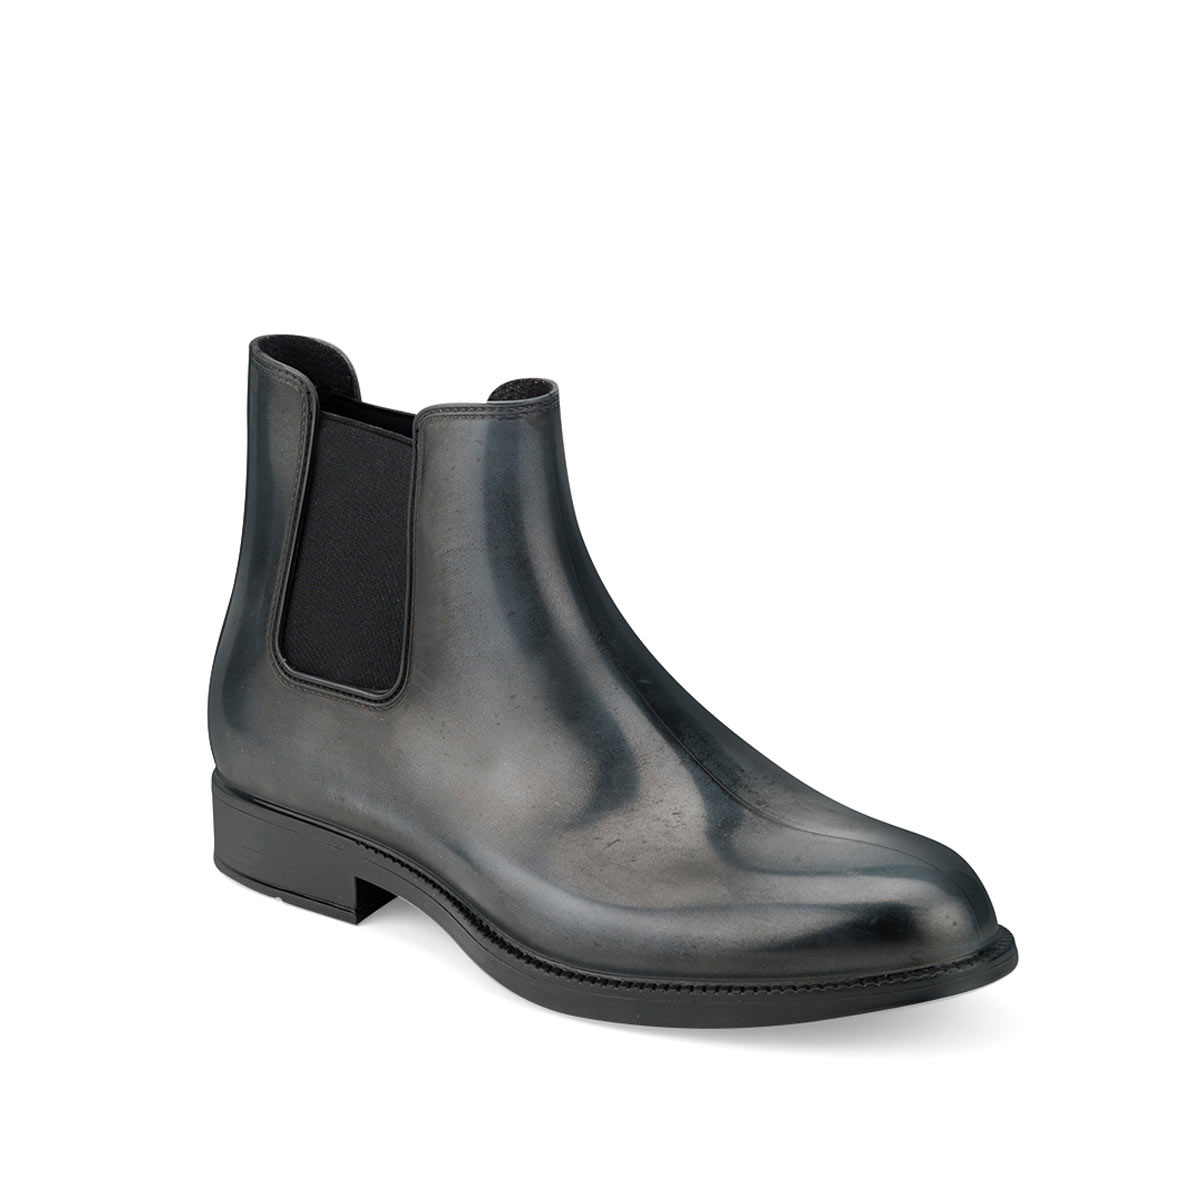 Chelsea boot in brushed effect pvc with elastic band on ankle sides and insole - gray colour